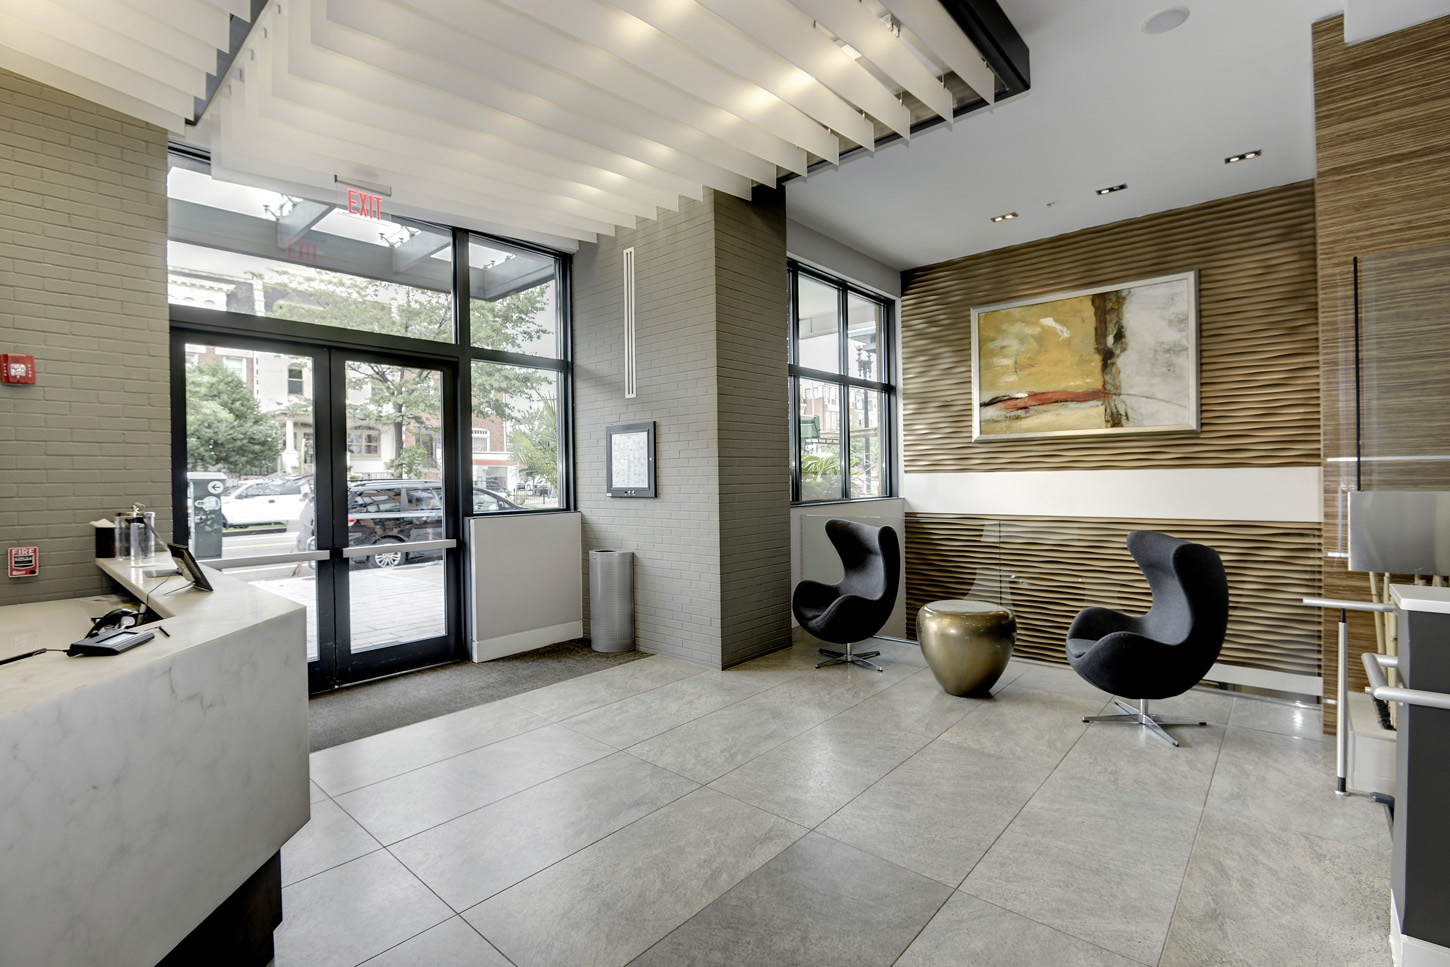 Interior of building entrance with view of modern lobby seating and large abstract art on wood wave wallcovering